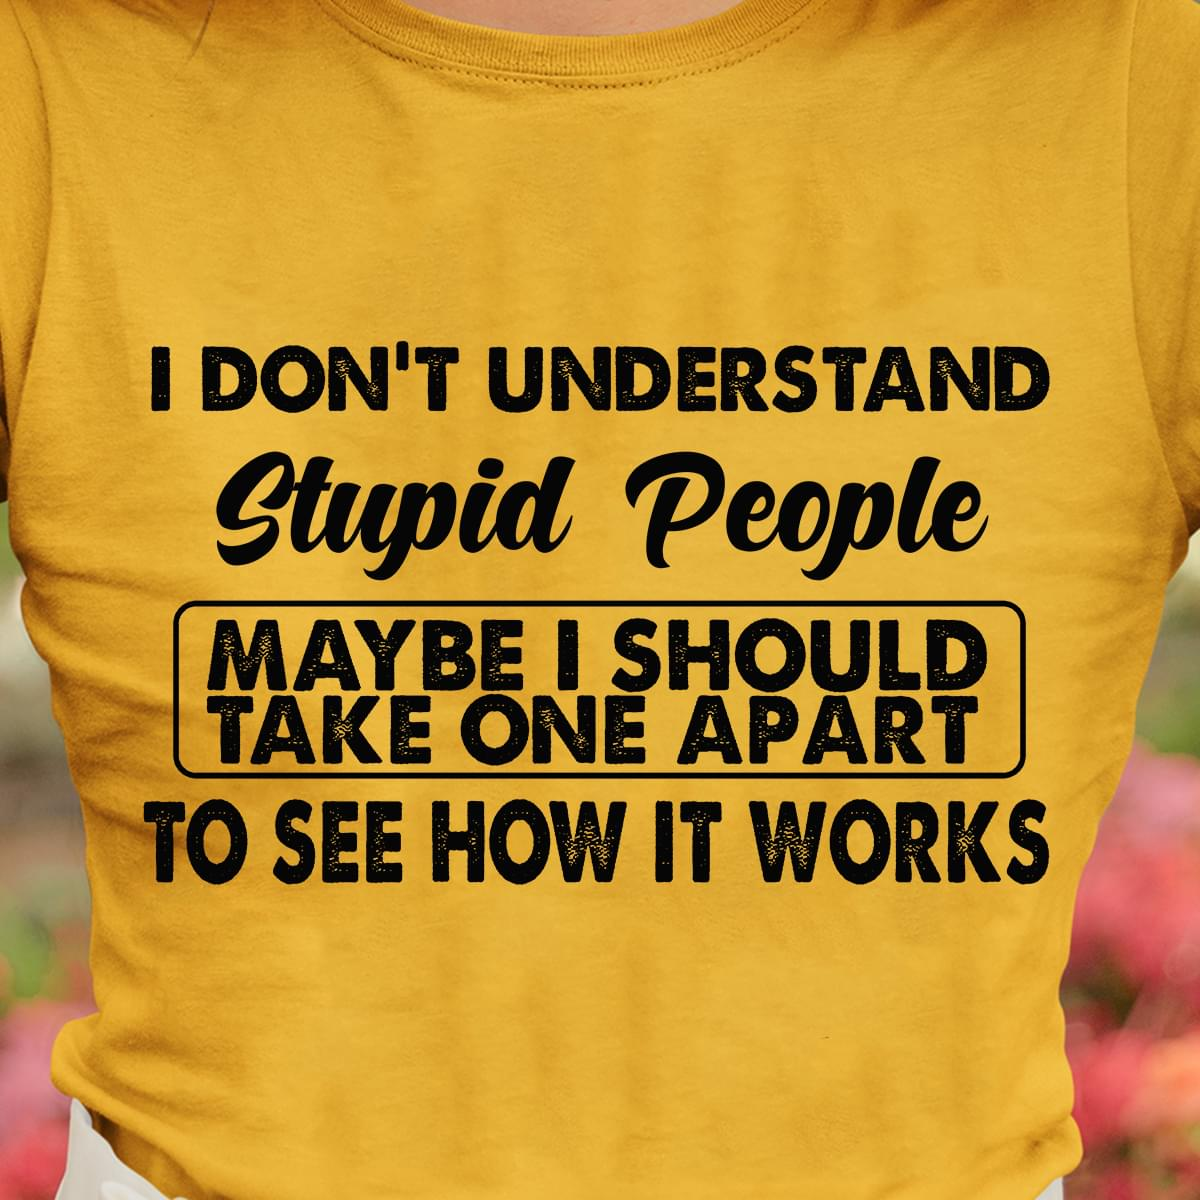 I Dont Understand Stupid People Maybe I Should Take On Apart To See How It Works cotton t-shirt Hoodie Mug